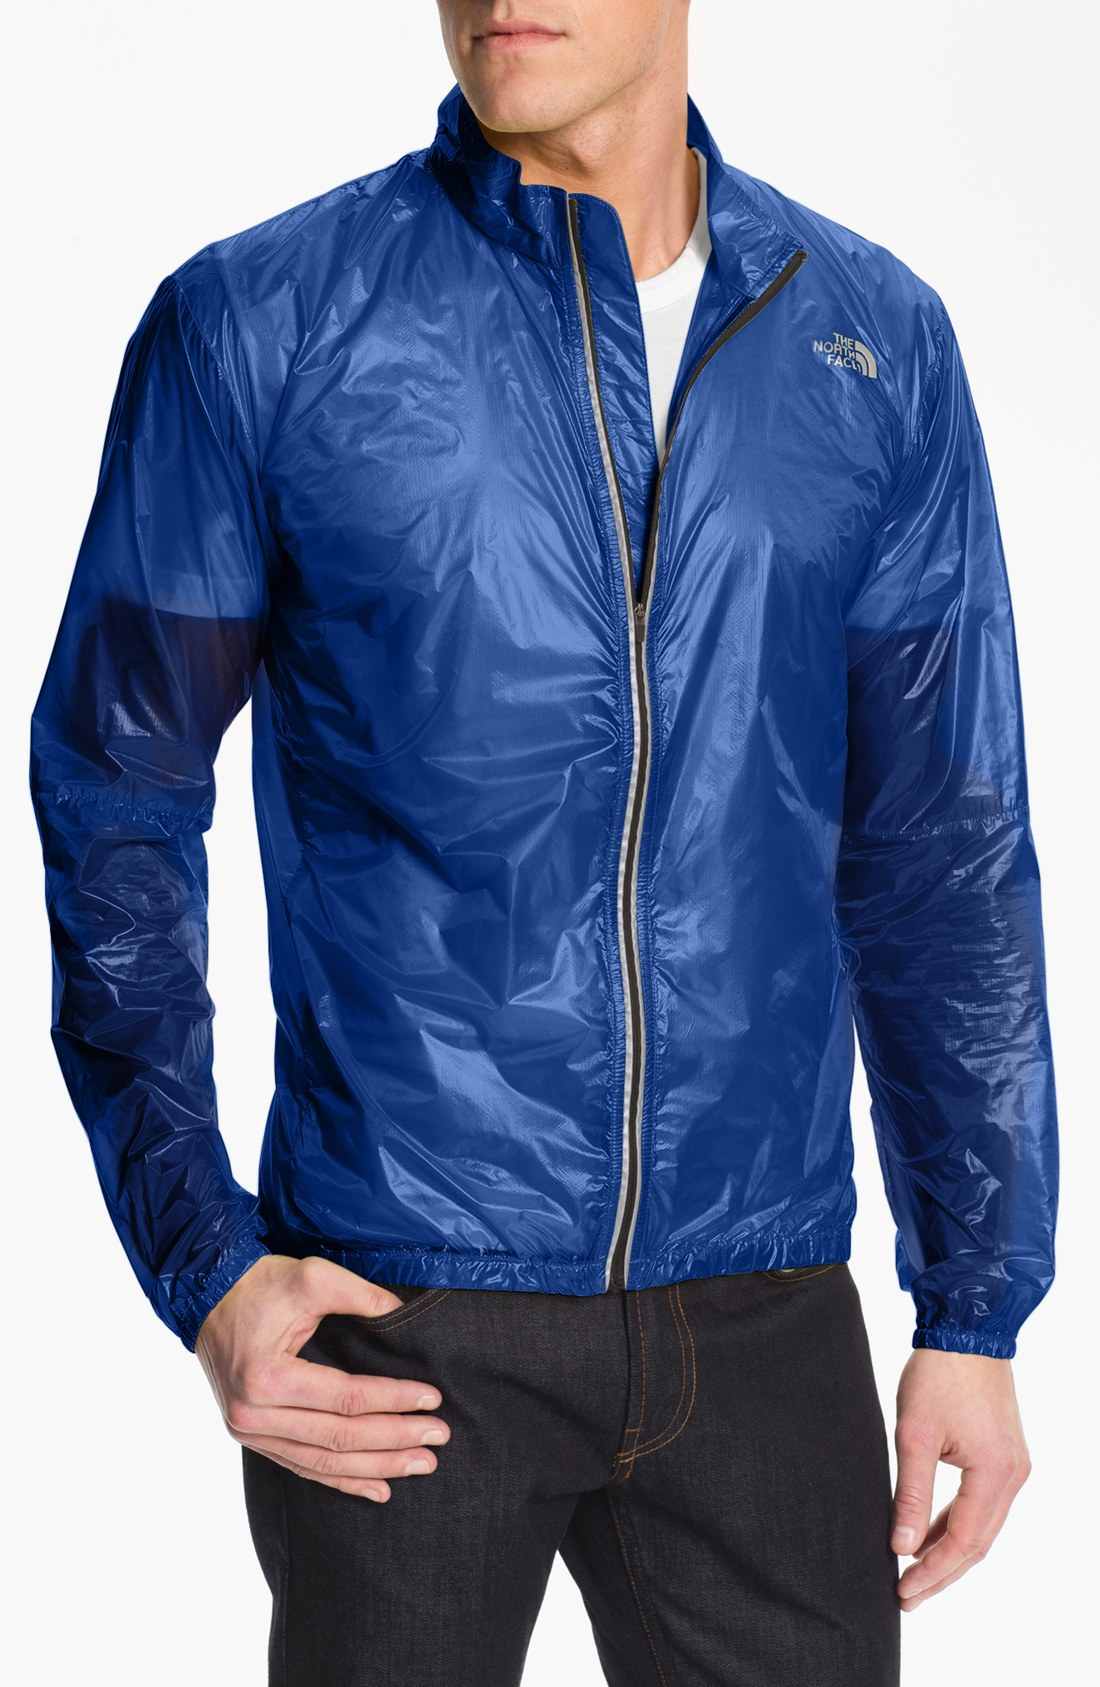 The North Face Accomack Light Weight Jacket In Blue For